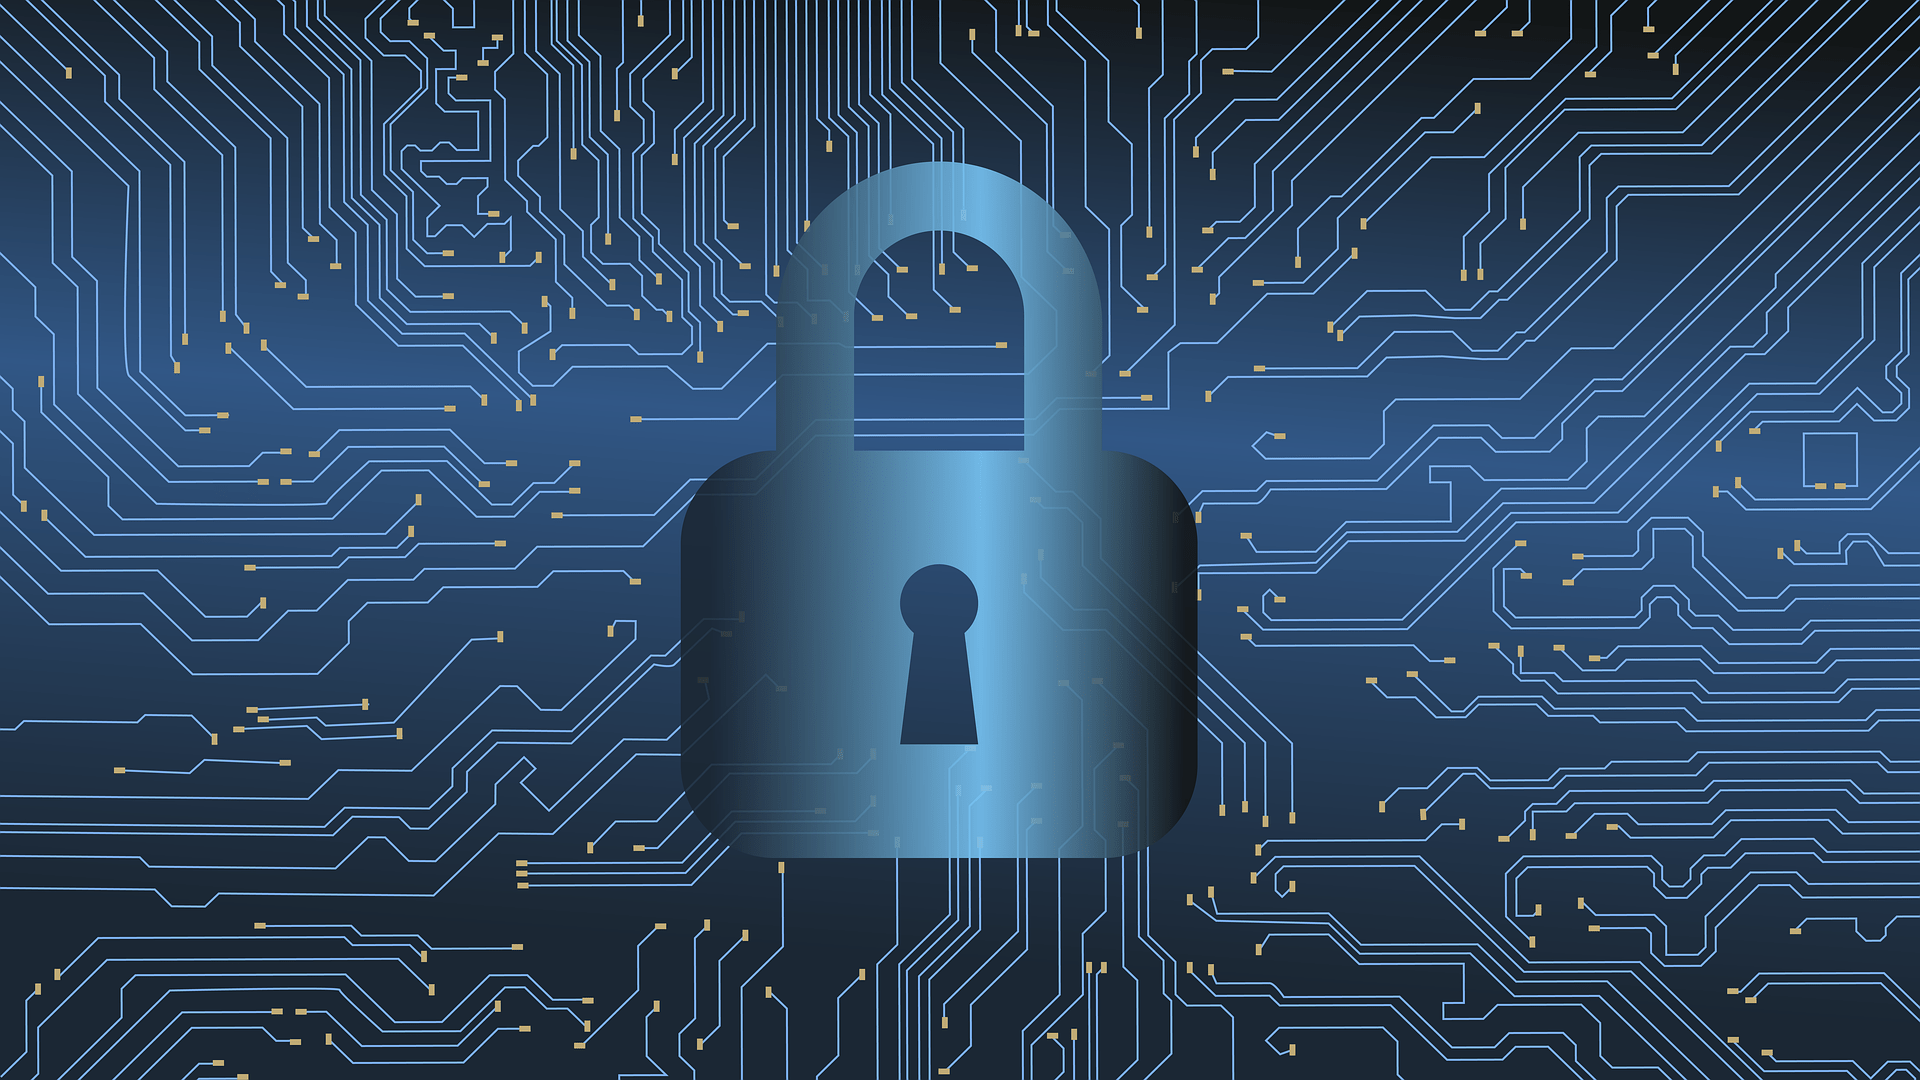 Make Cyber Security A Priority